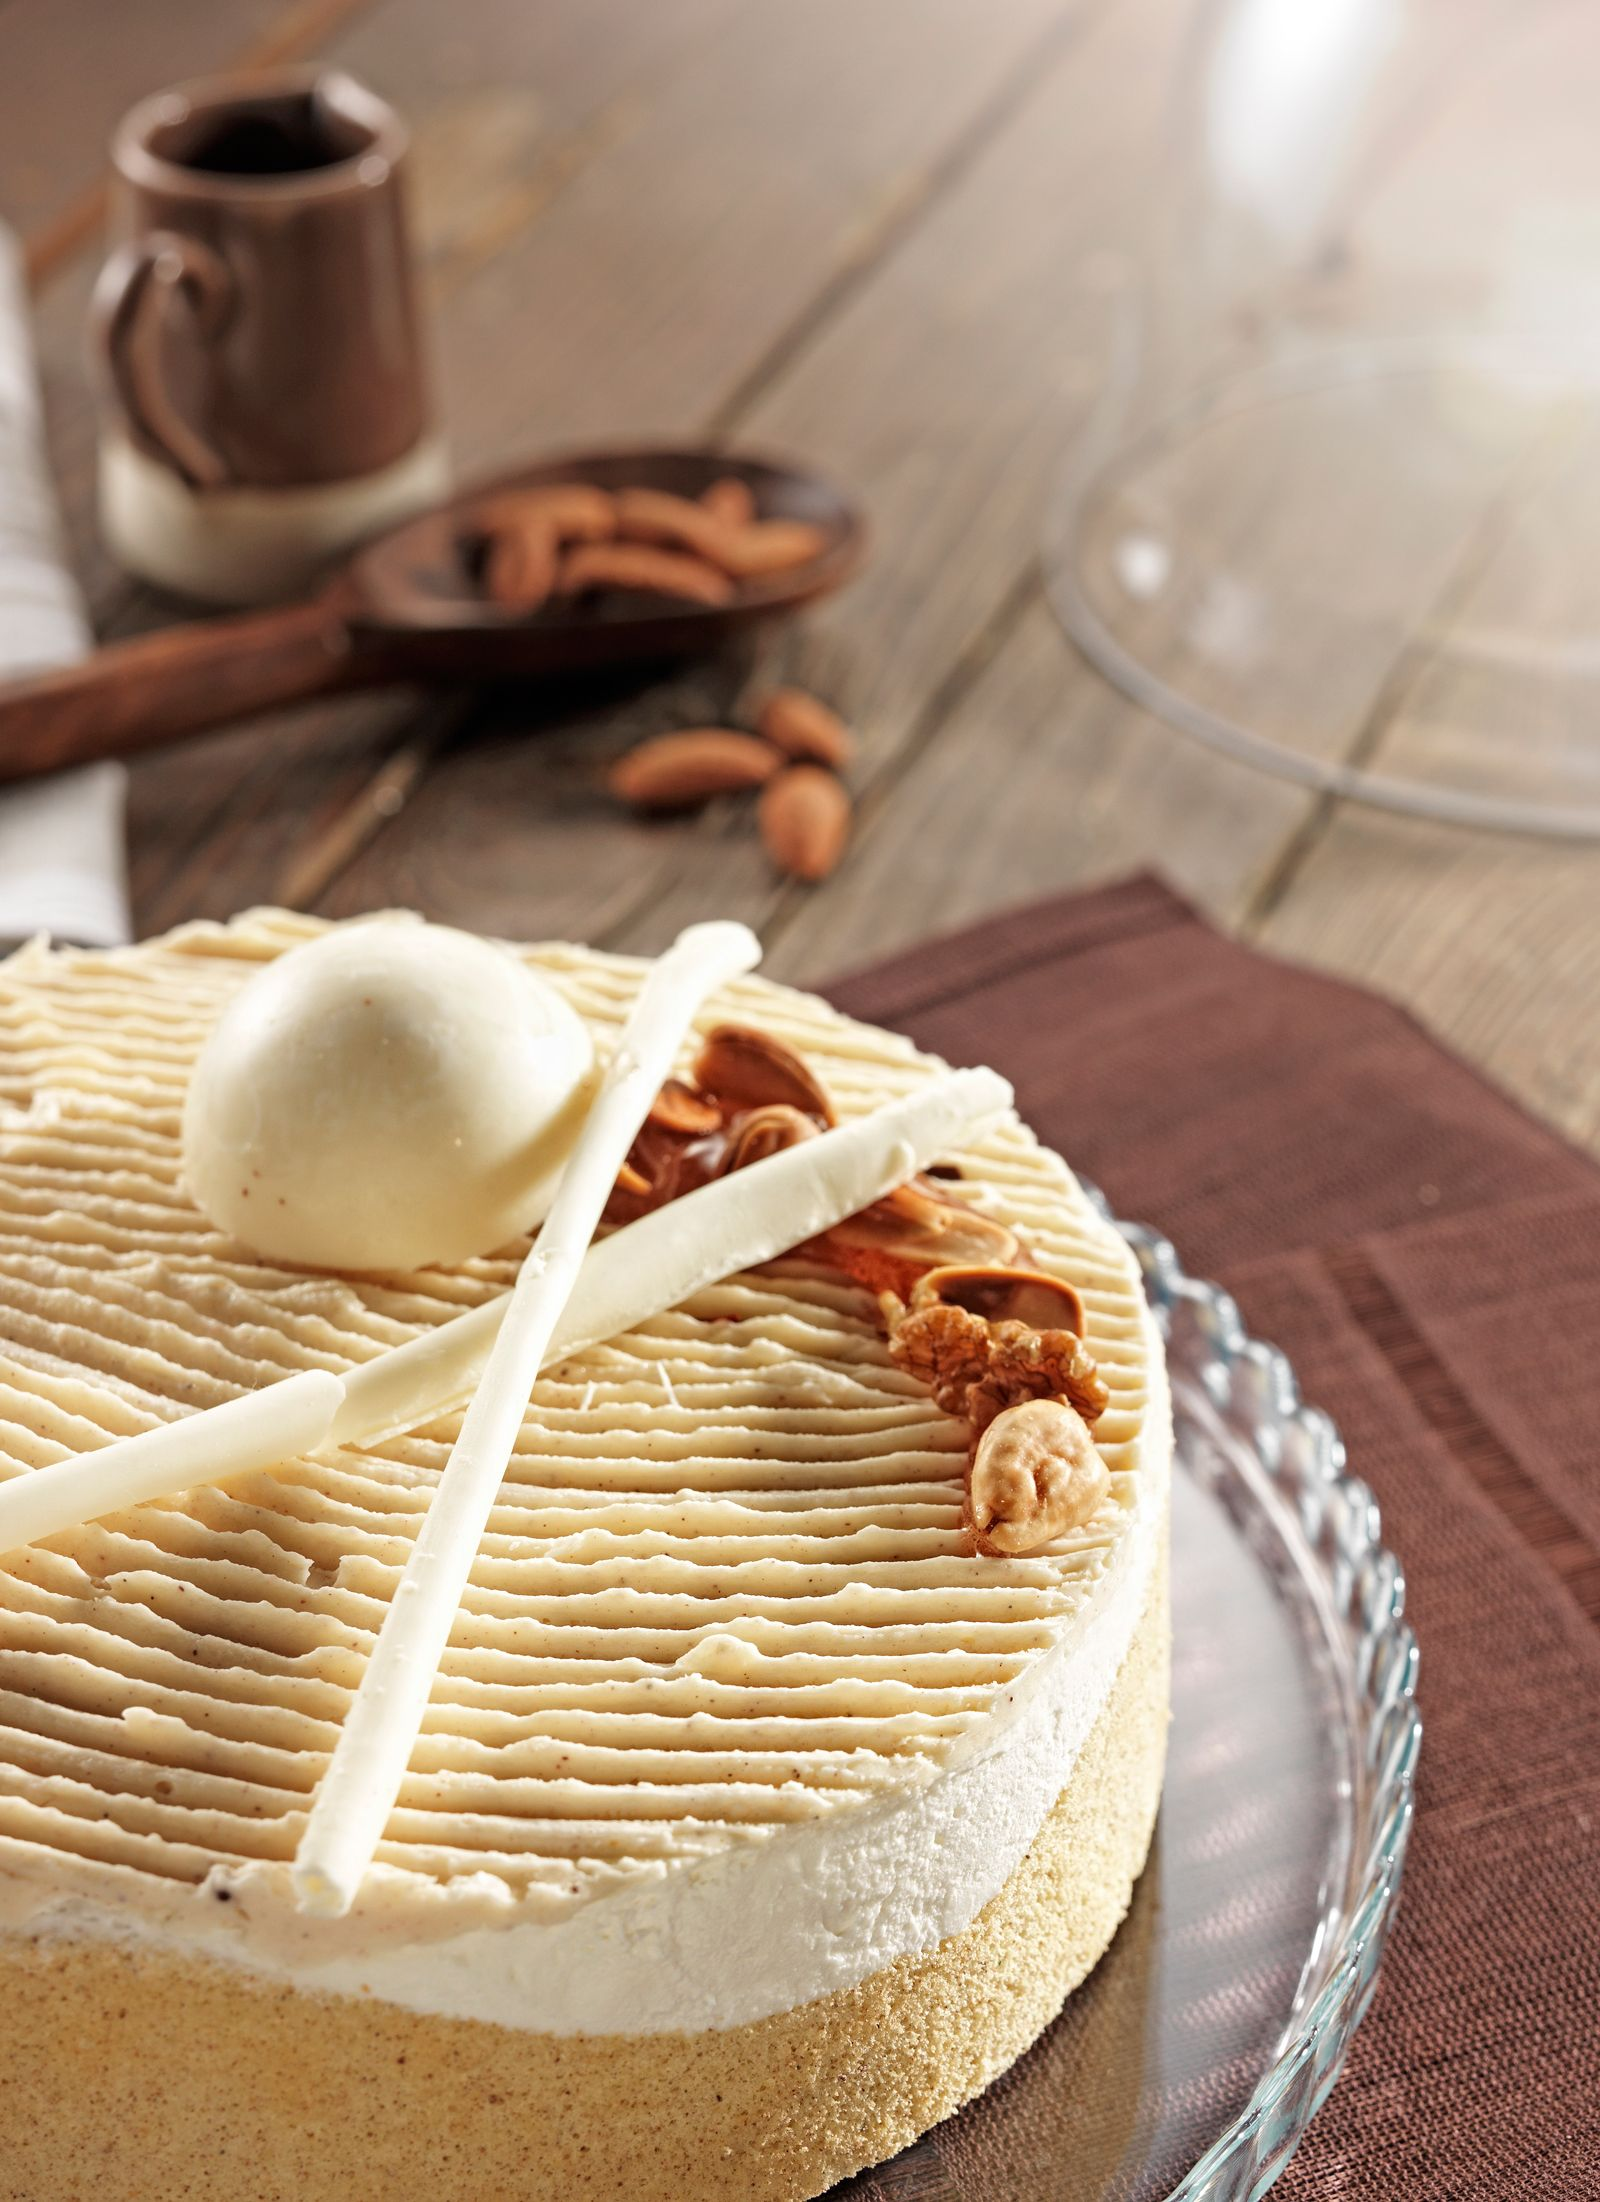 Mastic for a cake: recipes with a photo